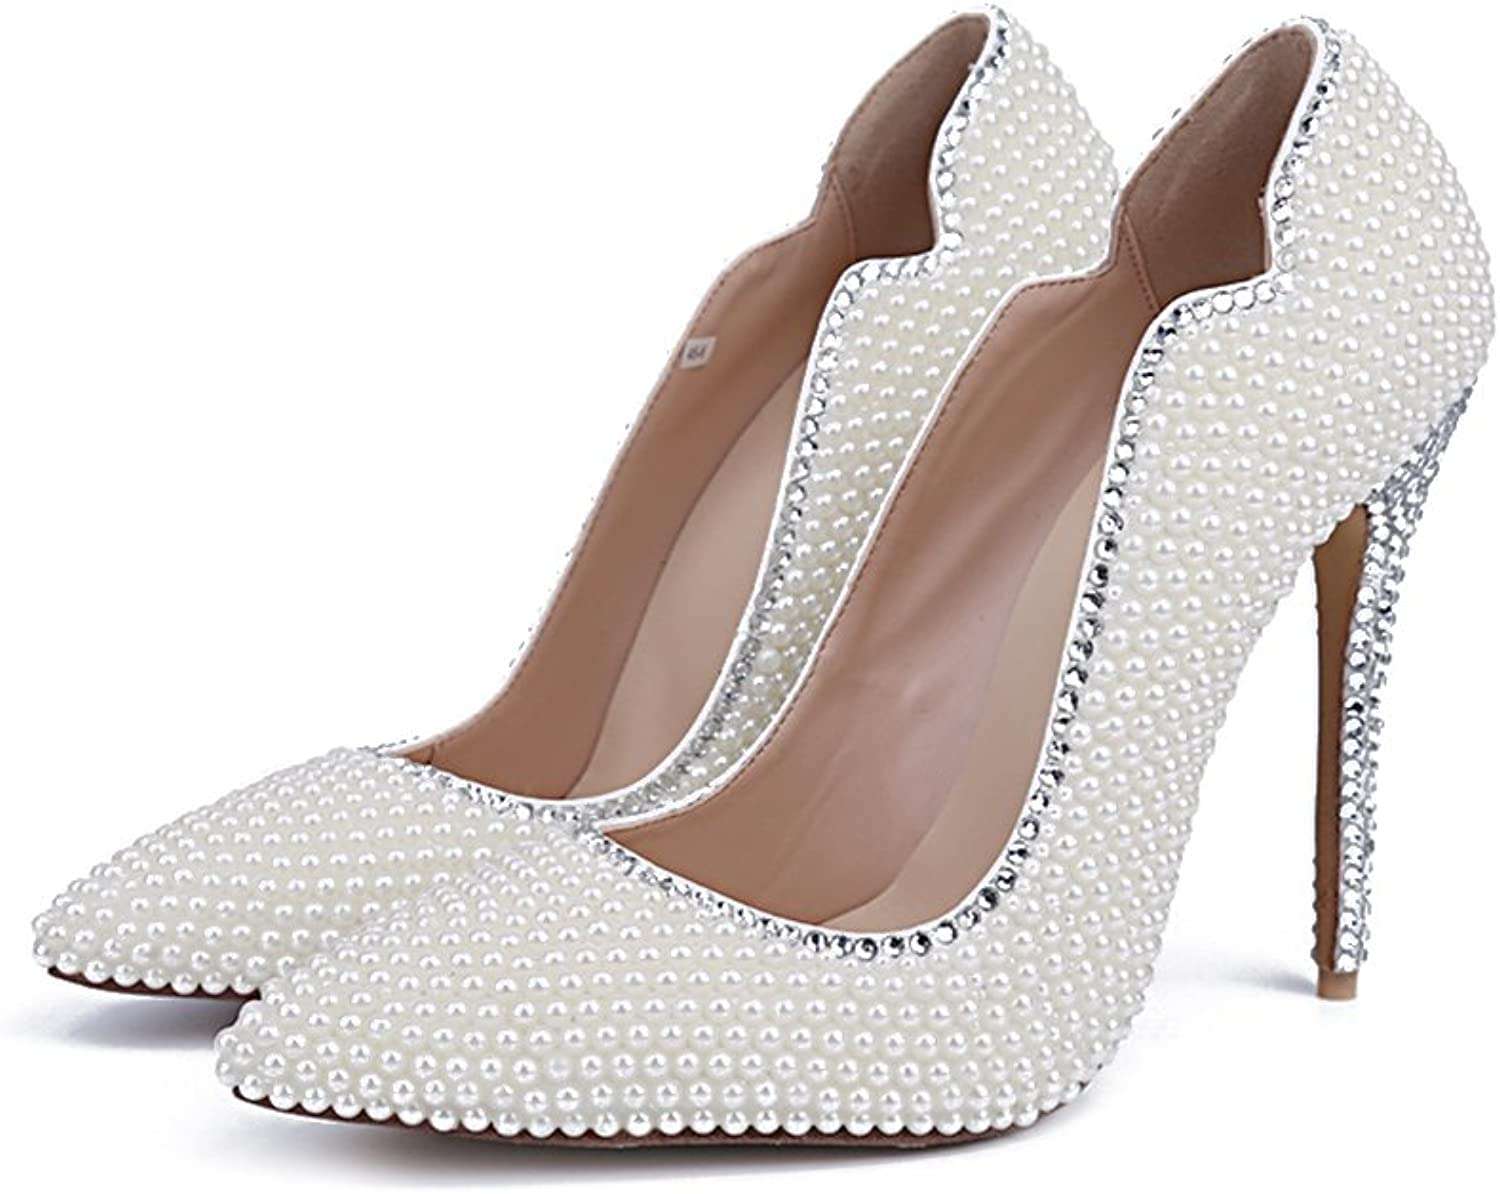 Lacitena Women White Pearl Wedding shoes High Heel Bridal Pump Dress shoes